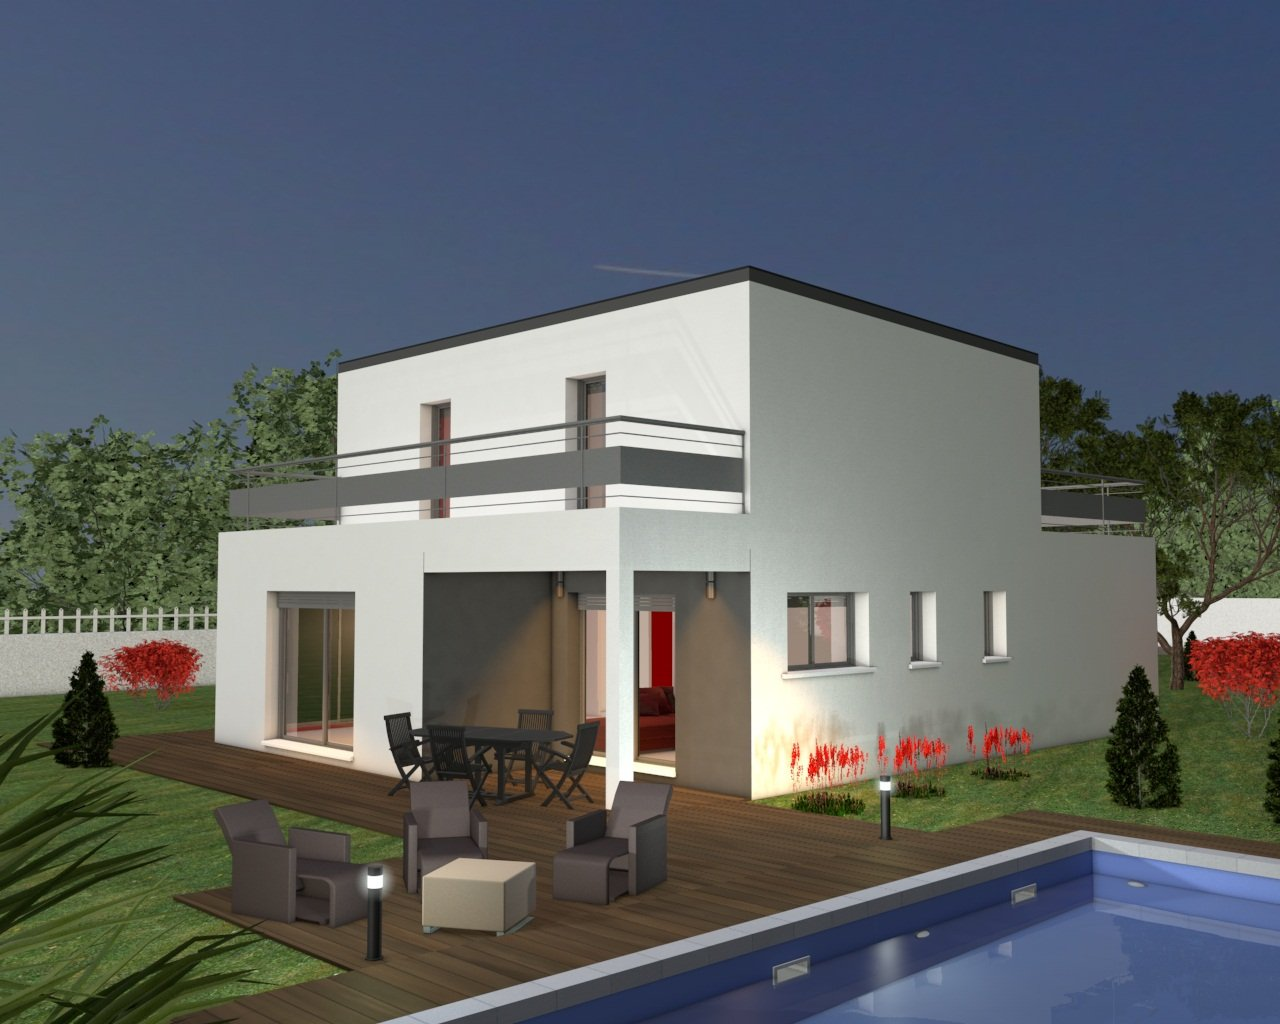 Immobilier plans maison toit terrasse for Immobilier maison